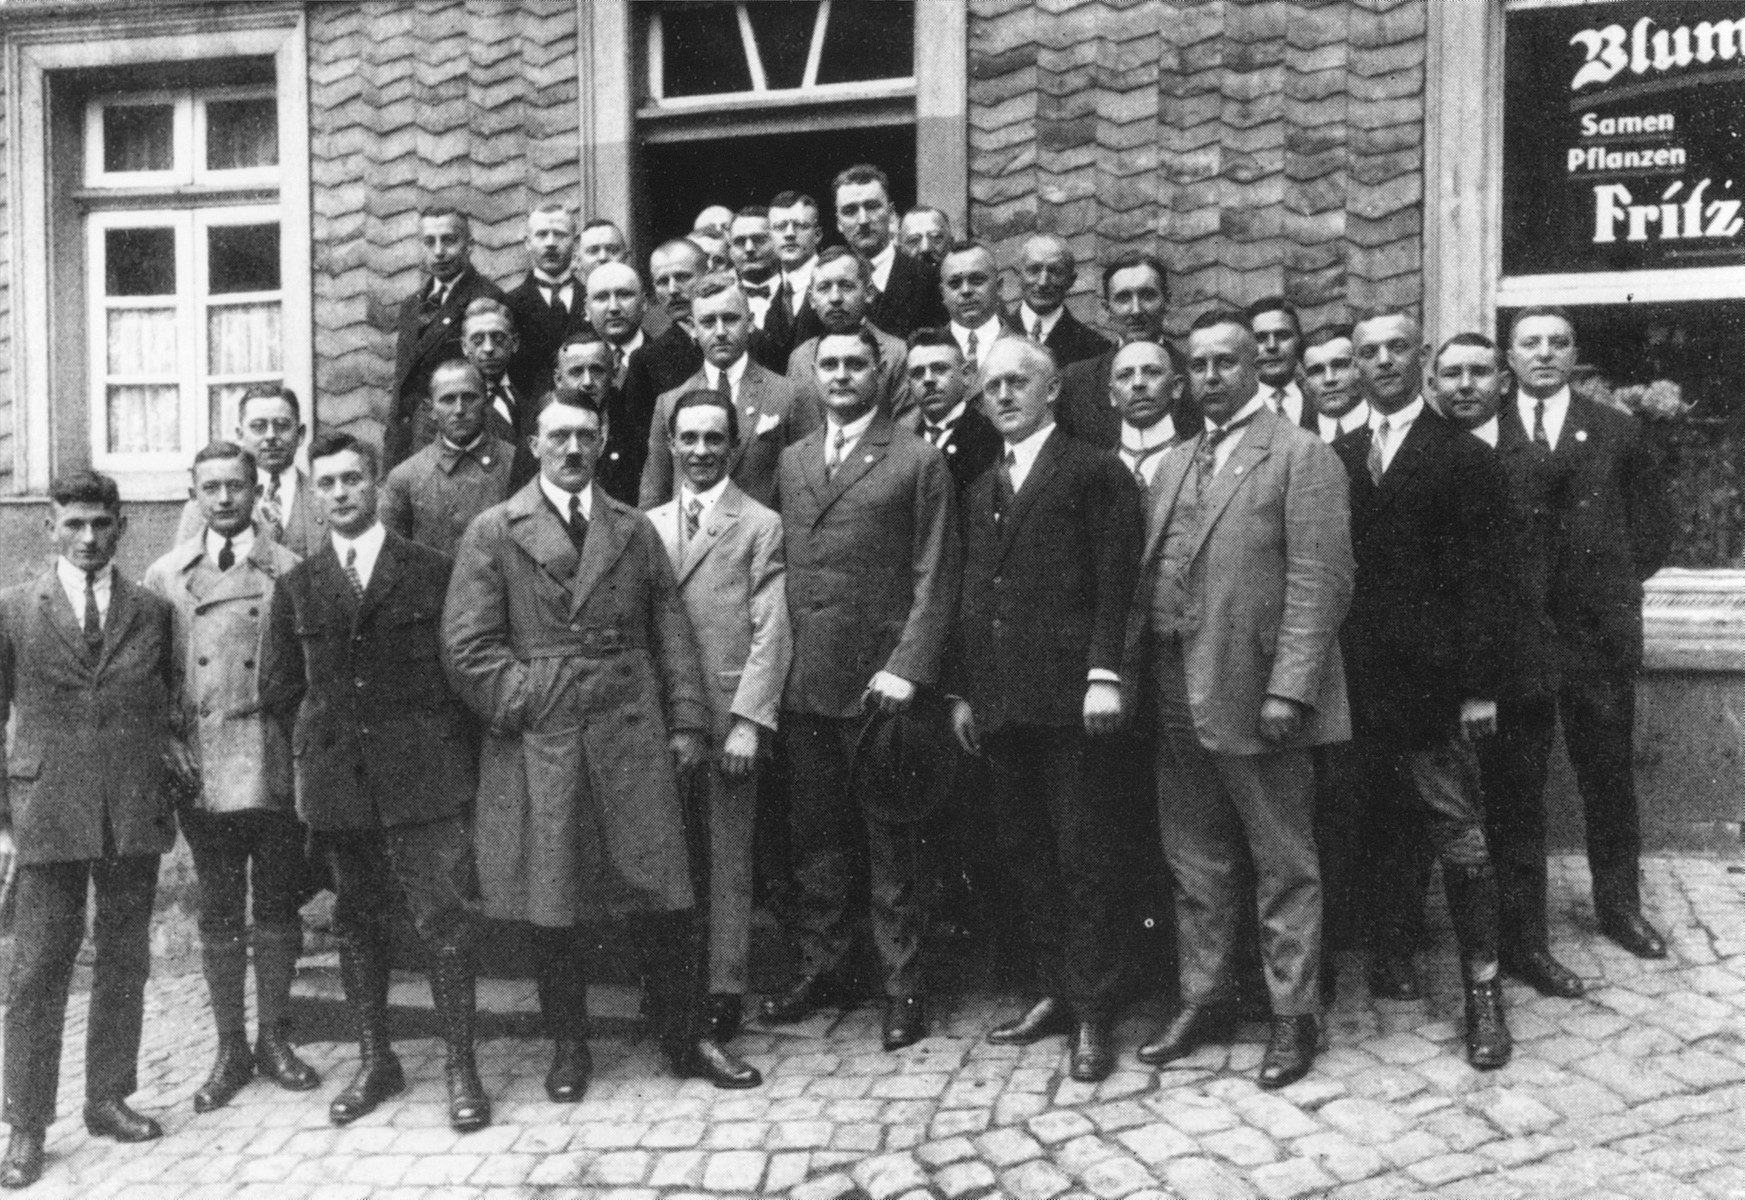 Adolf Hitler and Joseph Goebbels pose with party members in Hattingen